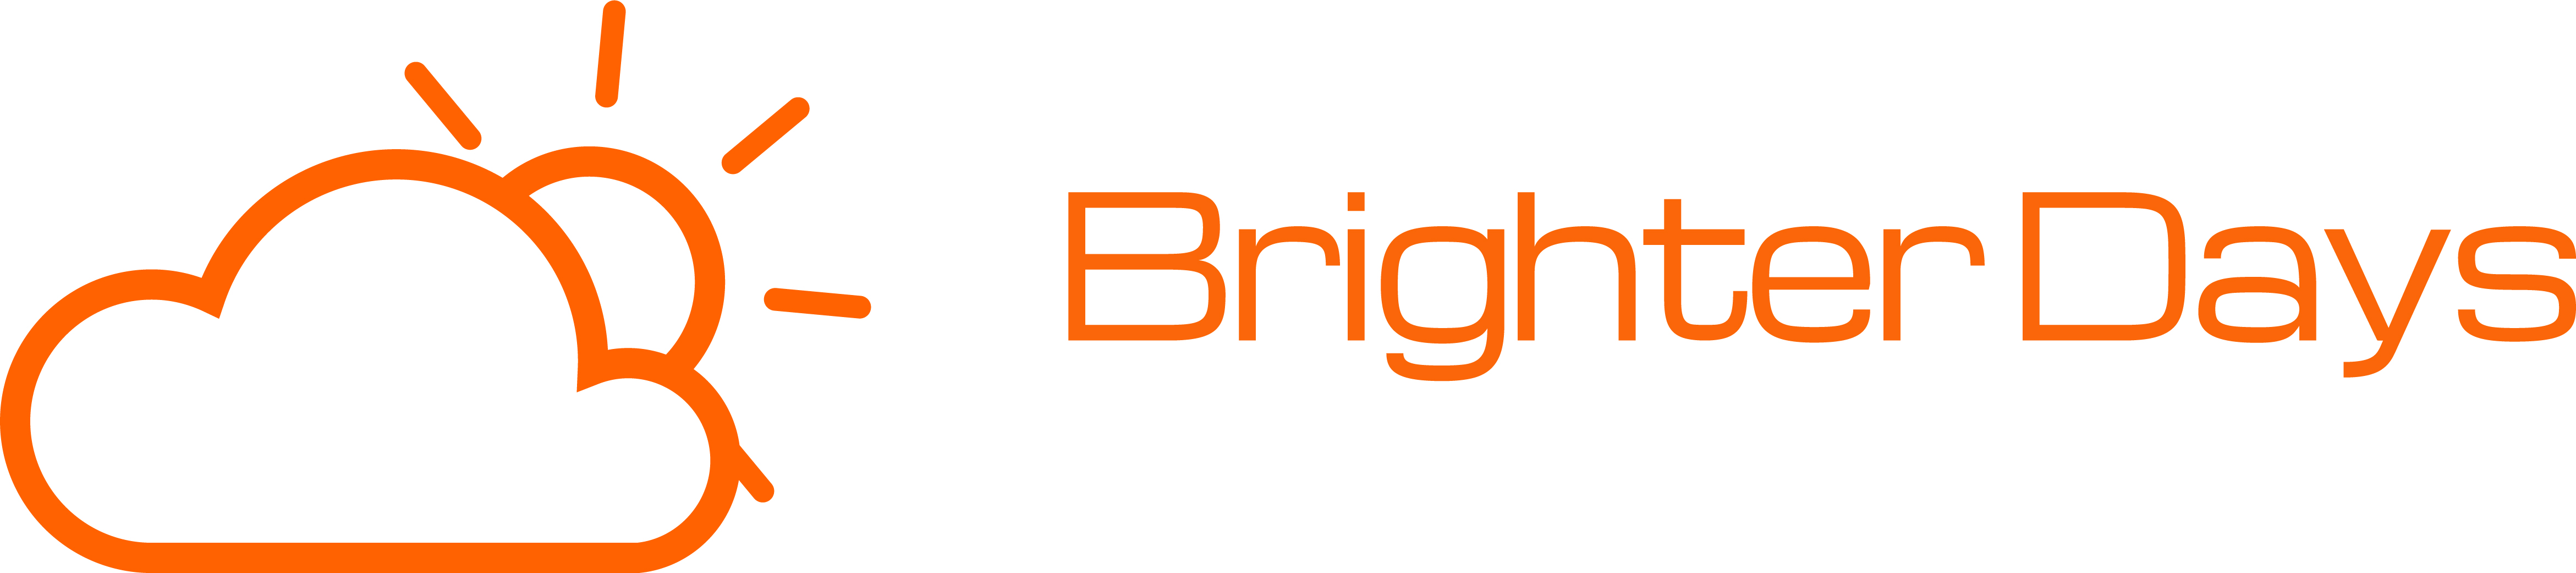 BrighterDays logo_Horizontal